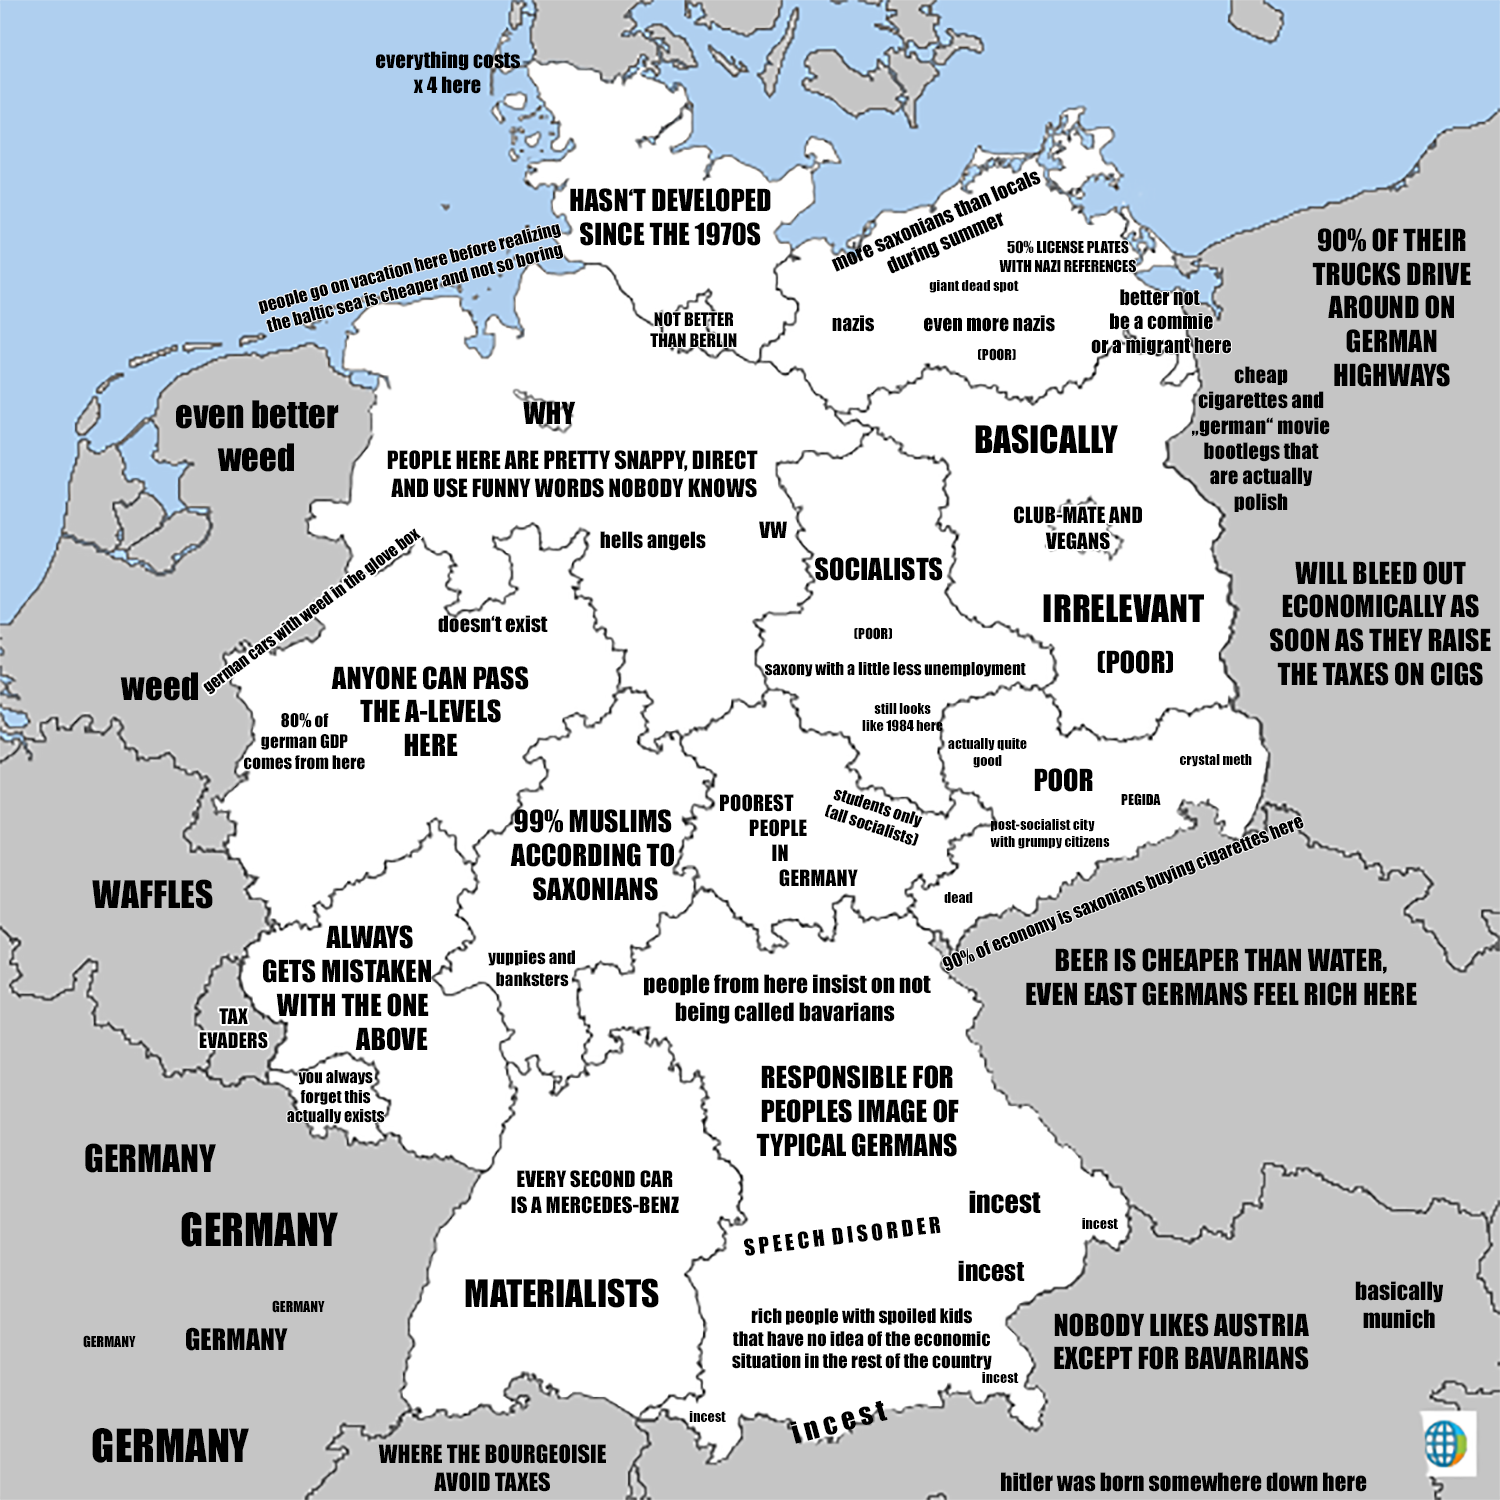 German society & stereotypes